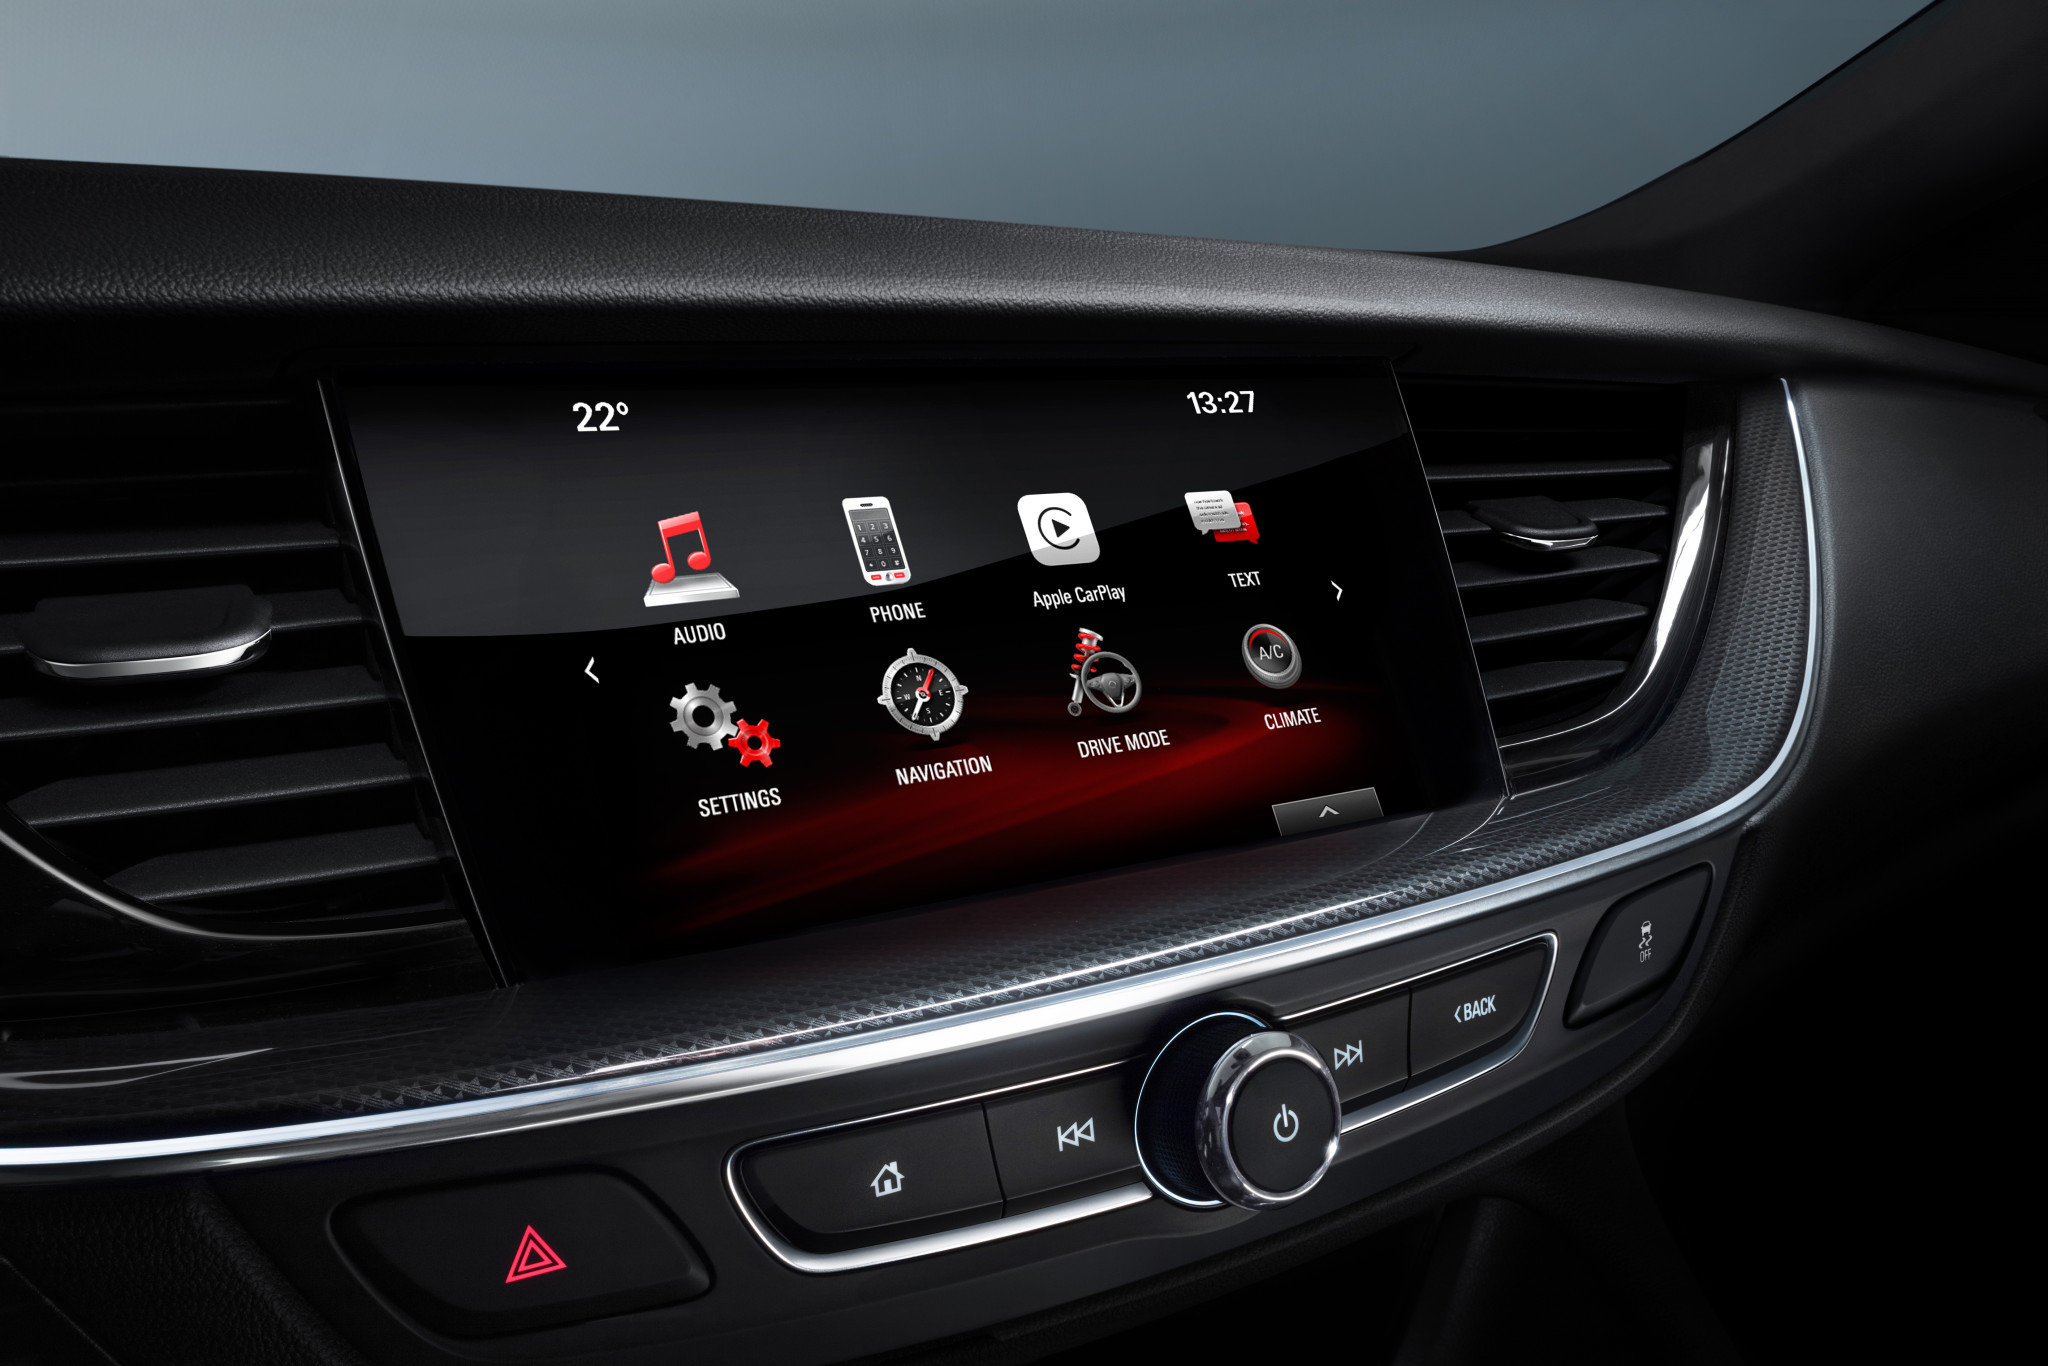 Best connections and top entertainment: The IntelliLink infotainment systems of the new Opel Insignia Sports Tourer – which are compatible with Apple CarPlay and Android Auto – can be controlled via the large color touchscreen.